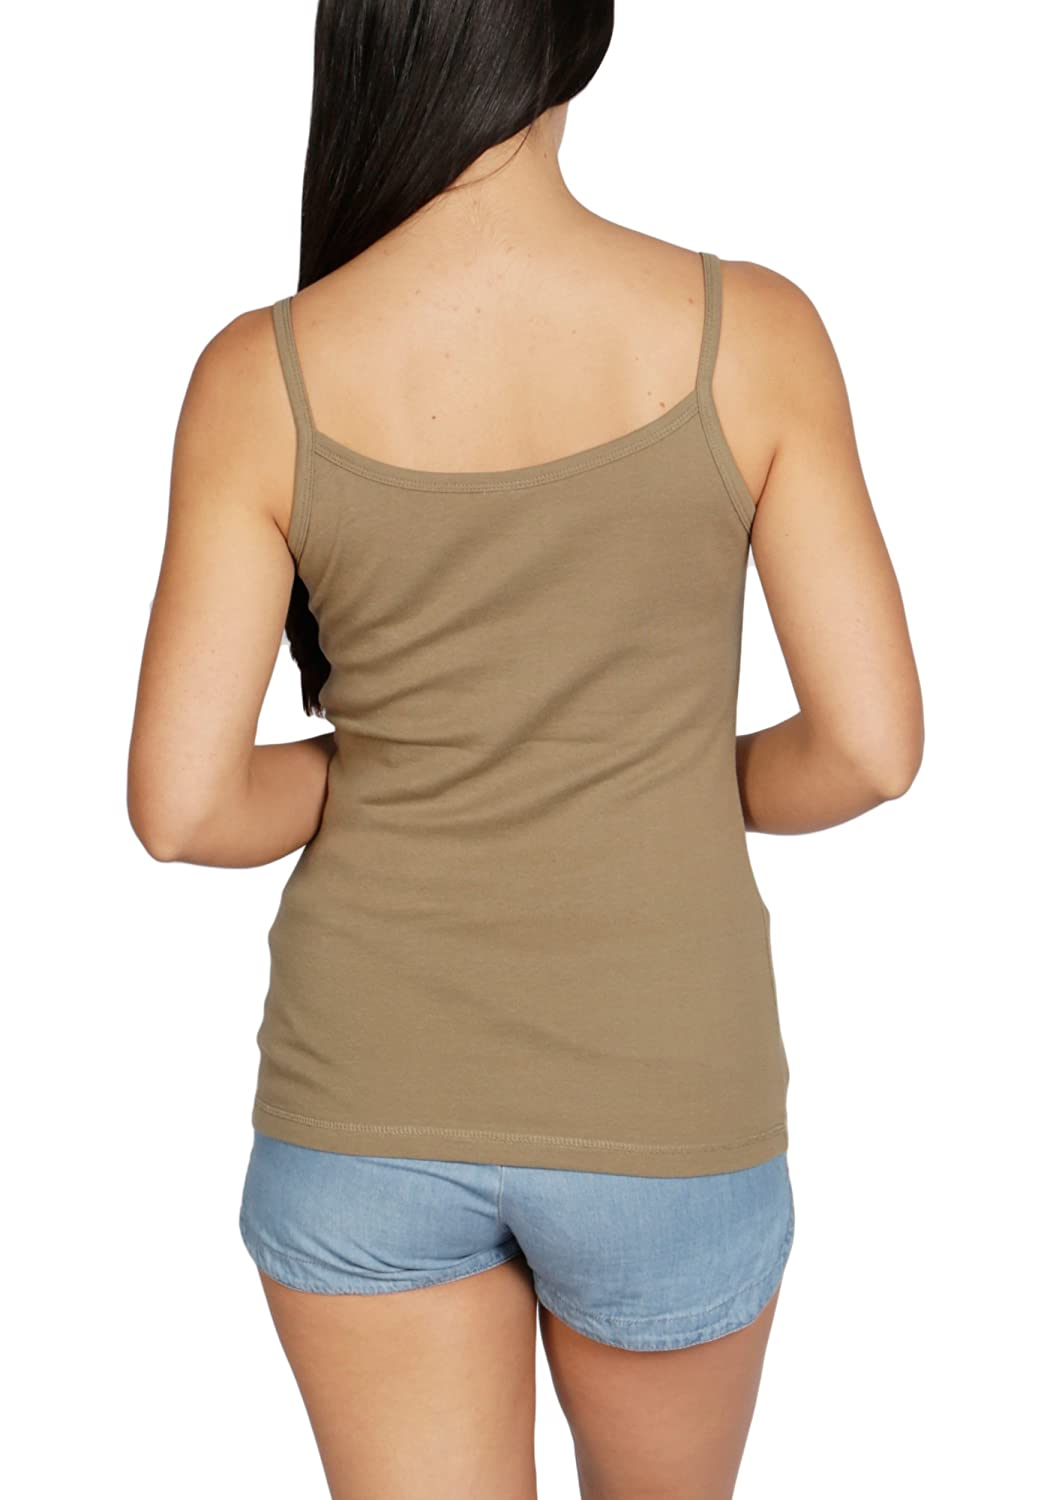 Blu Cherry 3 Pack Womens Plain Cotton Strappy Camisole Tank Top T Shirt Multi Pack Slim Fit